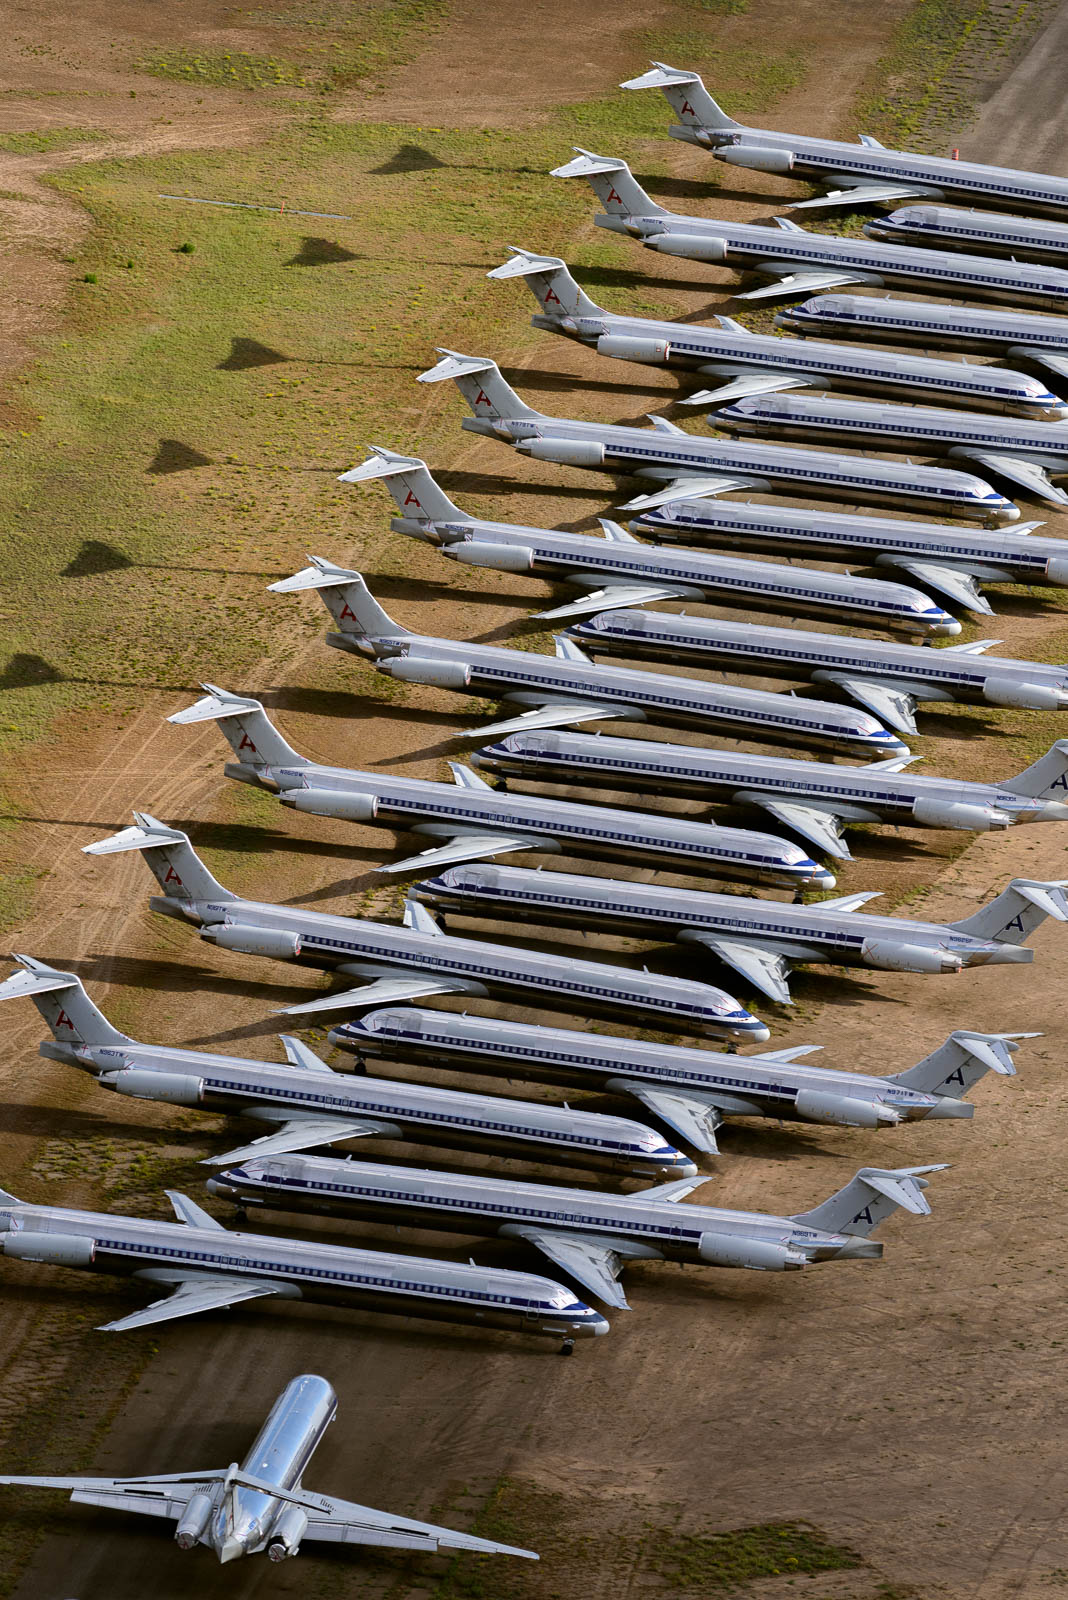 American Airlines MD 80 to be scrapped